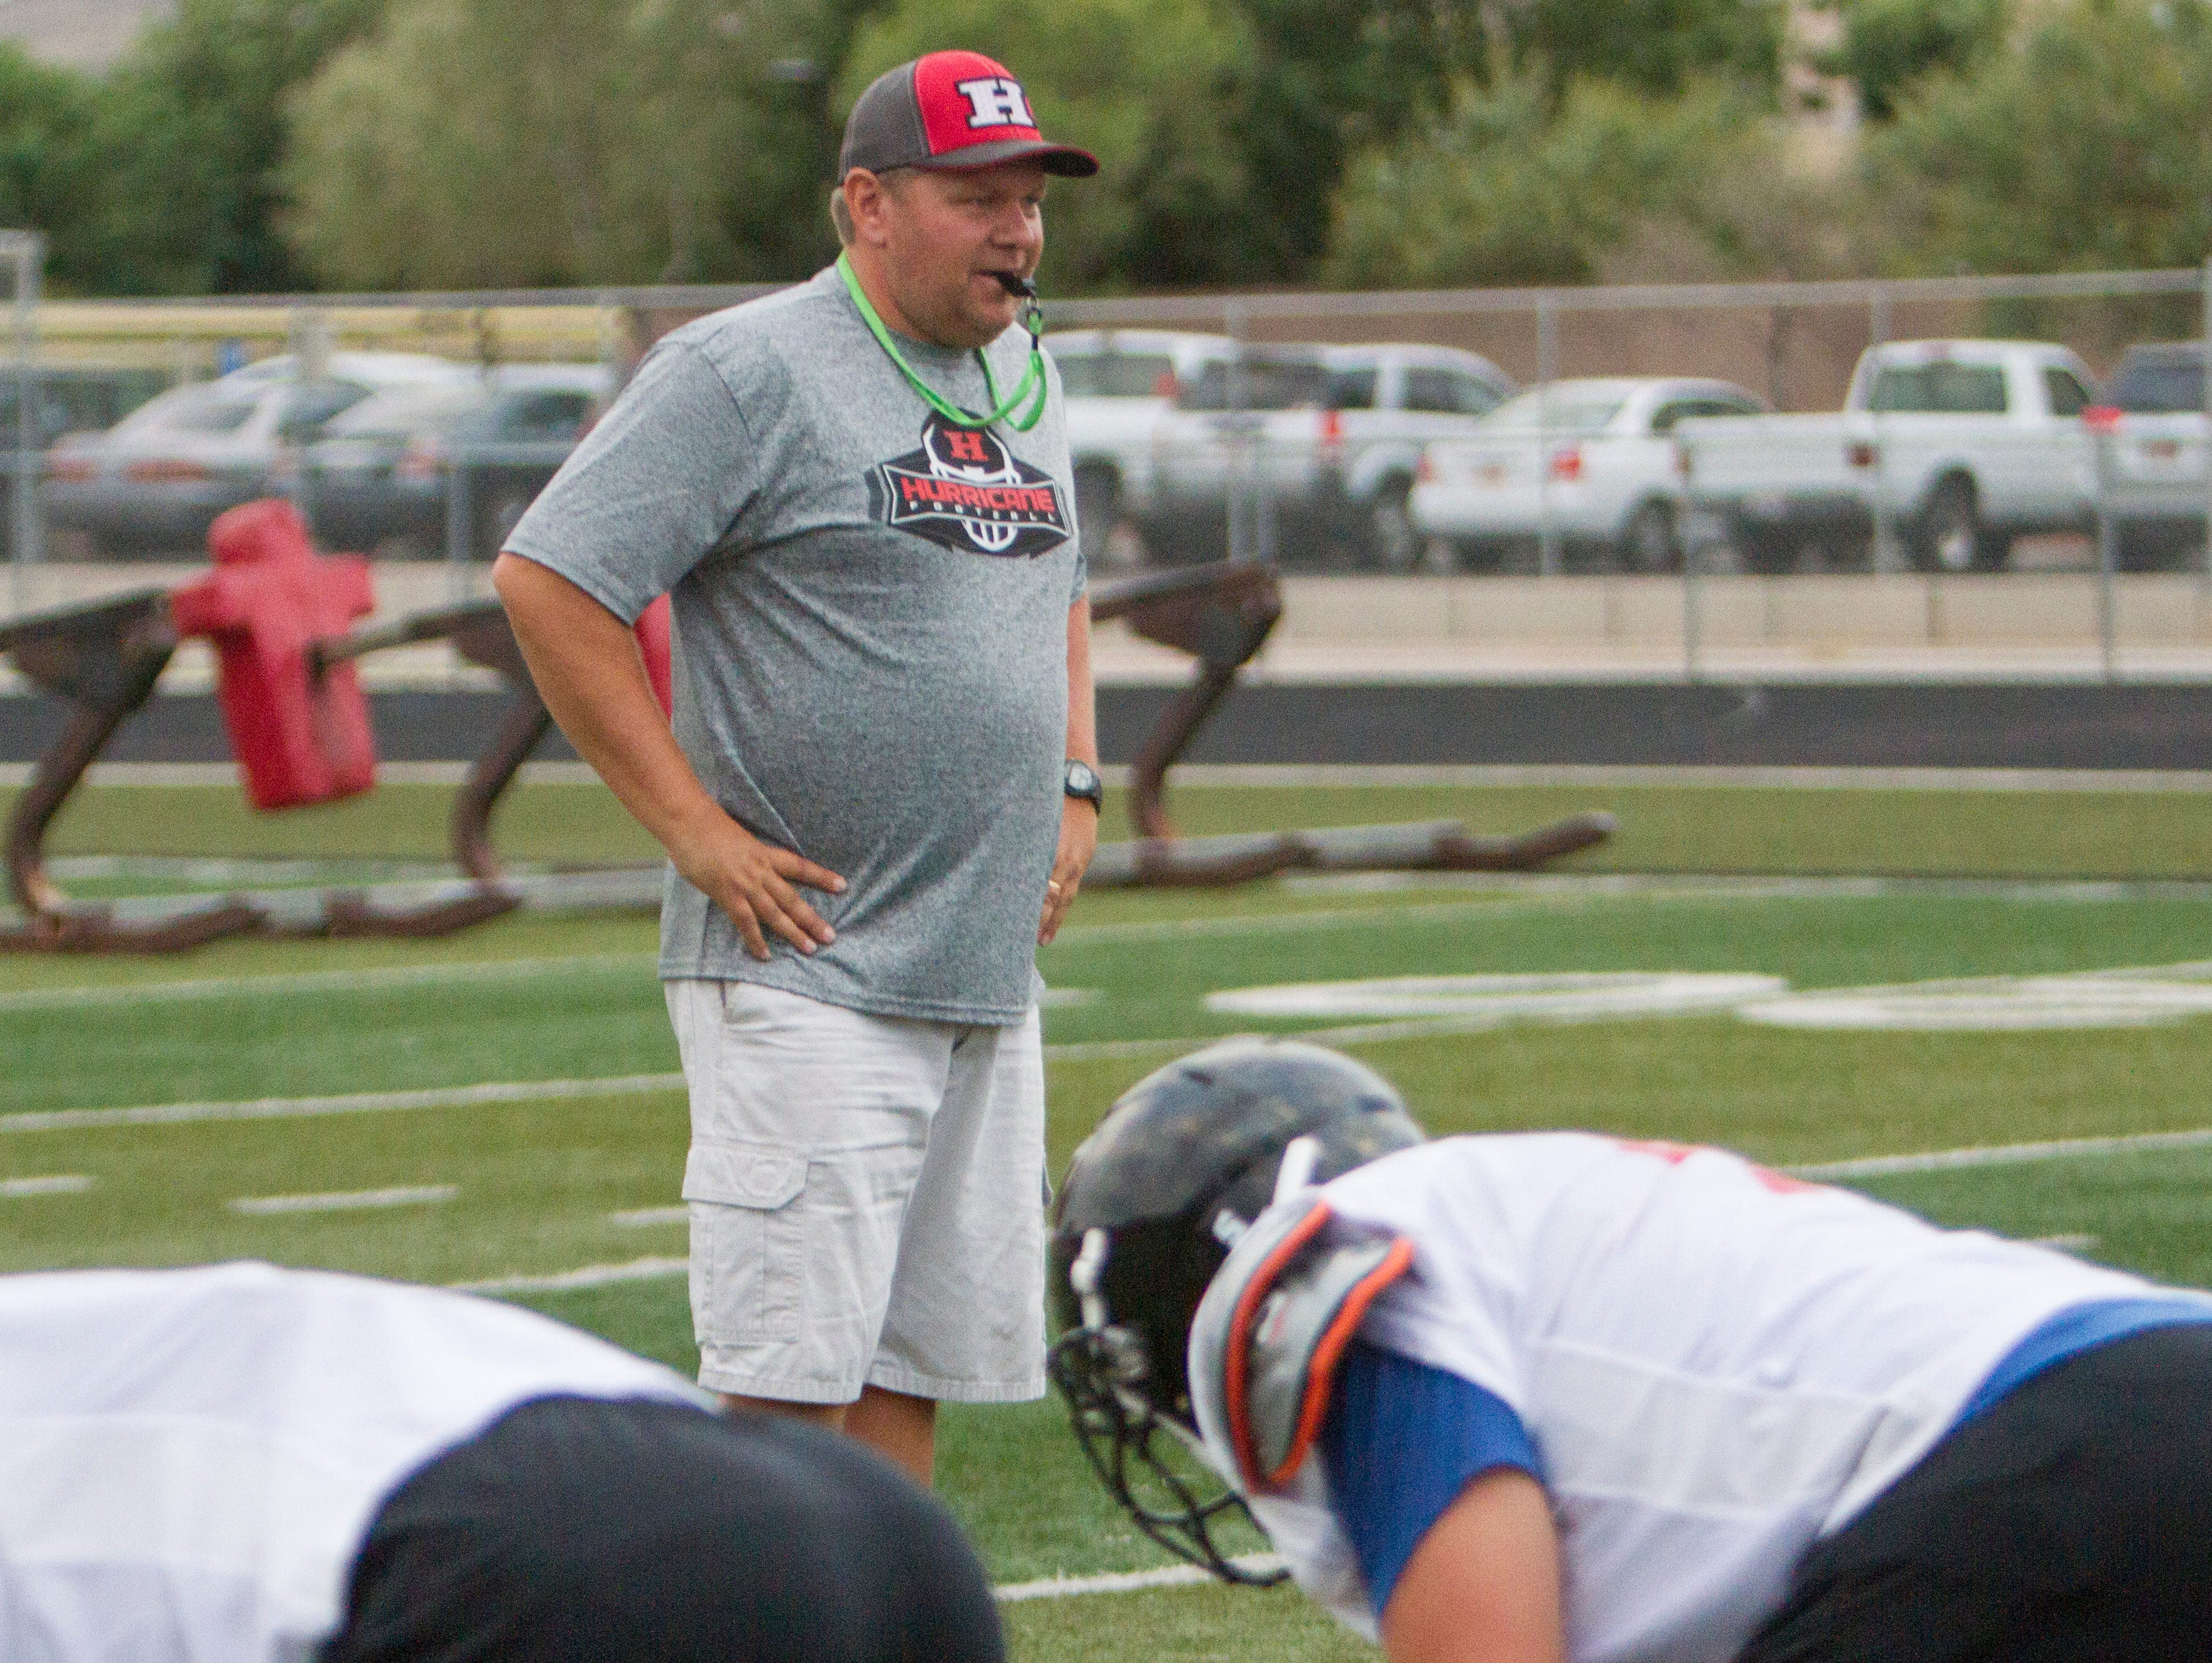 Hurricane head football coach Steve Pearson watches his team practice Thursday, August 4, 2016. The Tigers open the season at home against Skyline on Friday at 7 p.m.